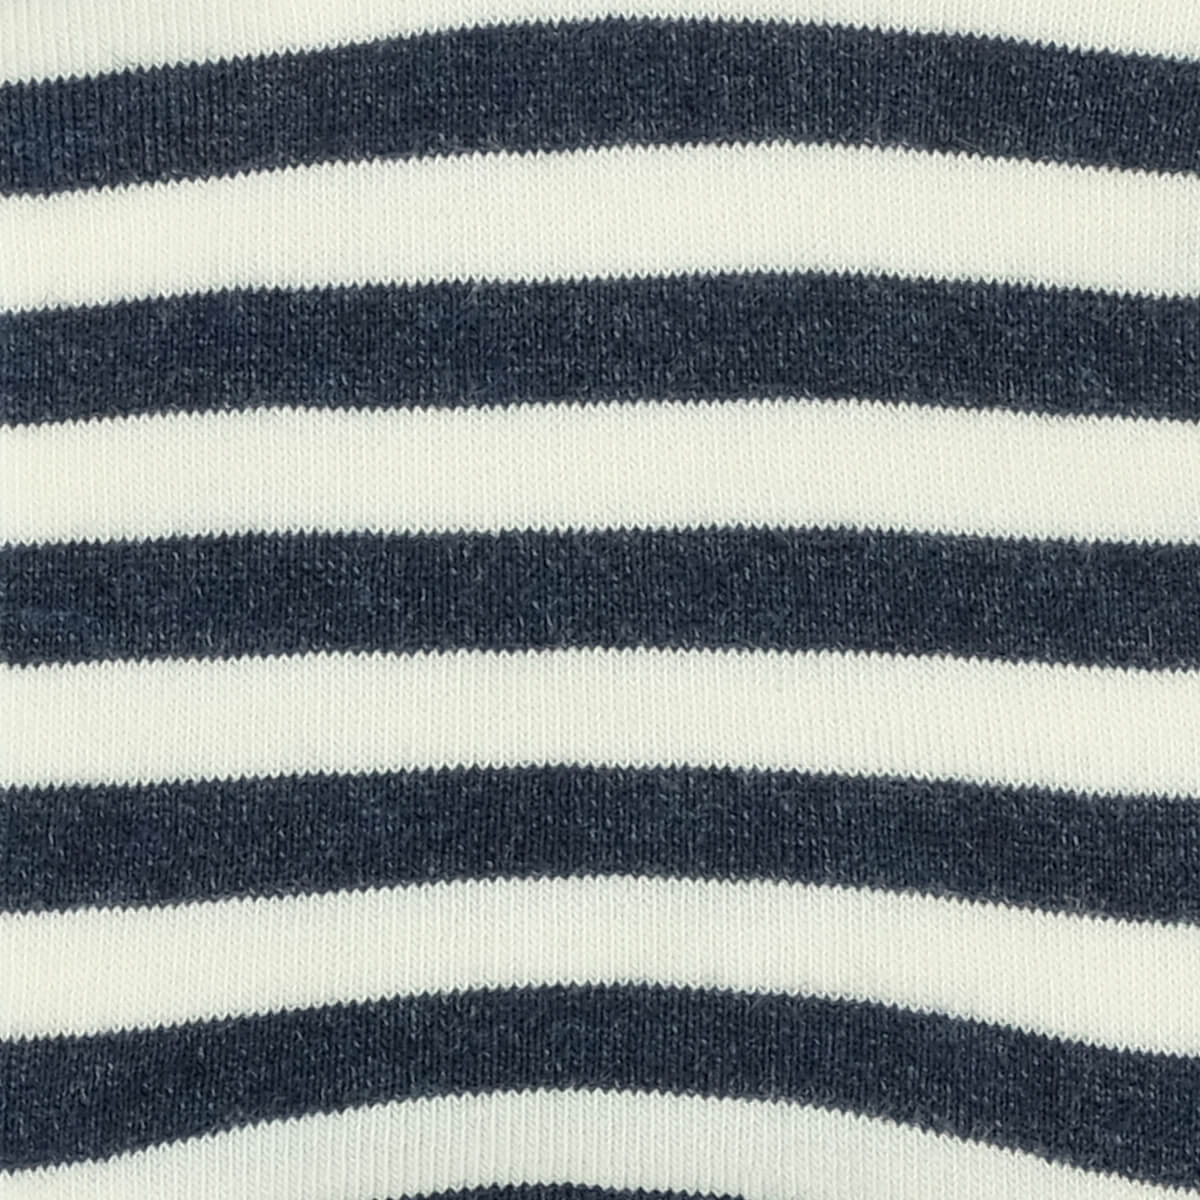 Womens Socks - Women's Abbey Stripes Socks - Navy⎪Etiquette Clothiers